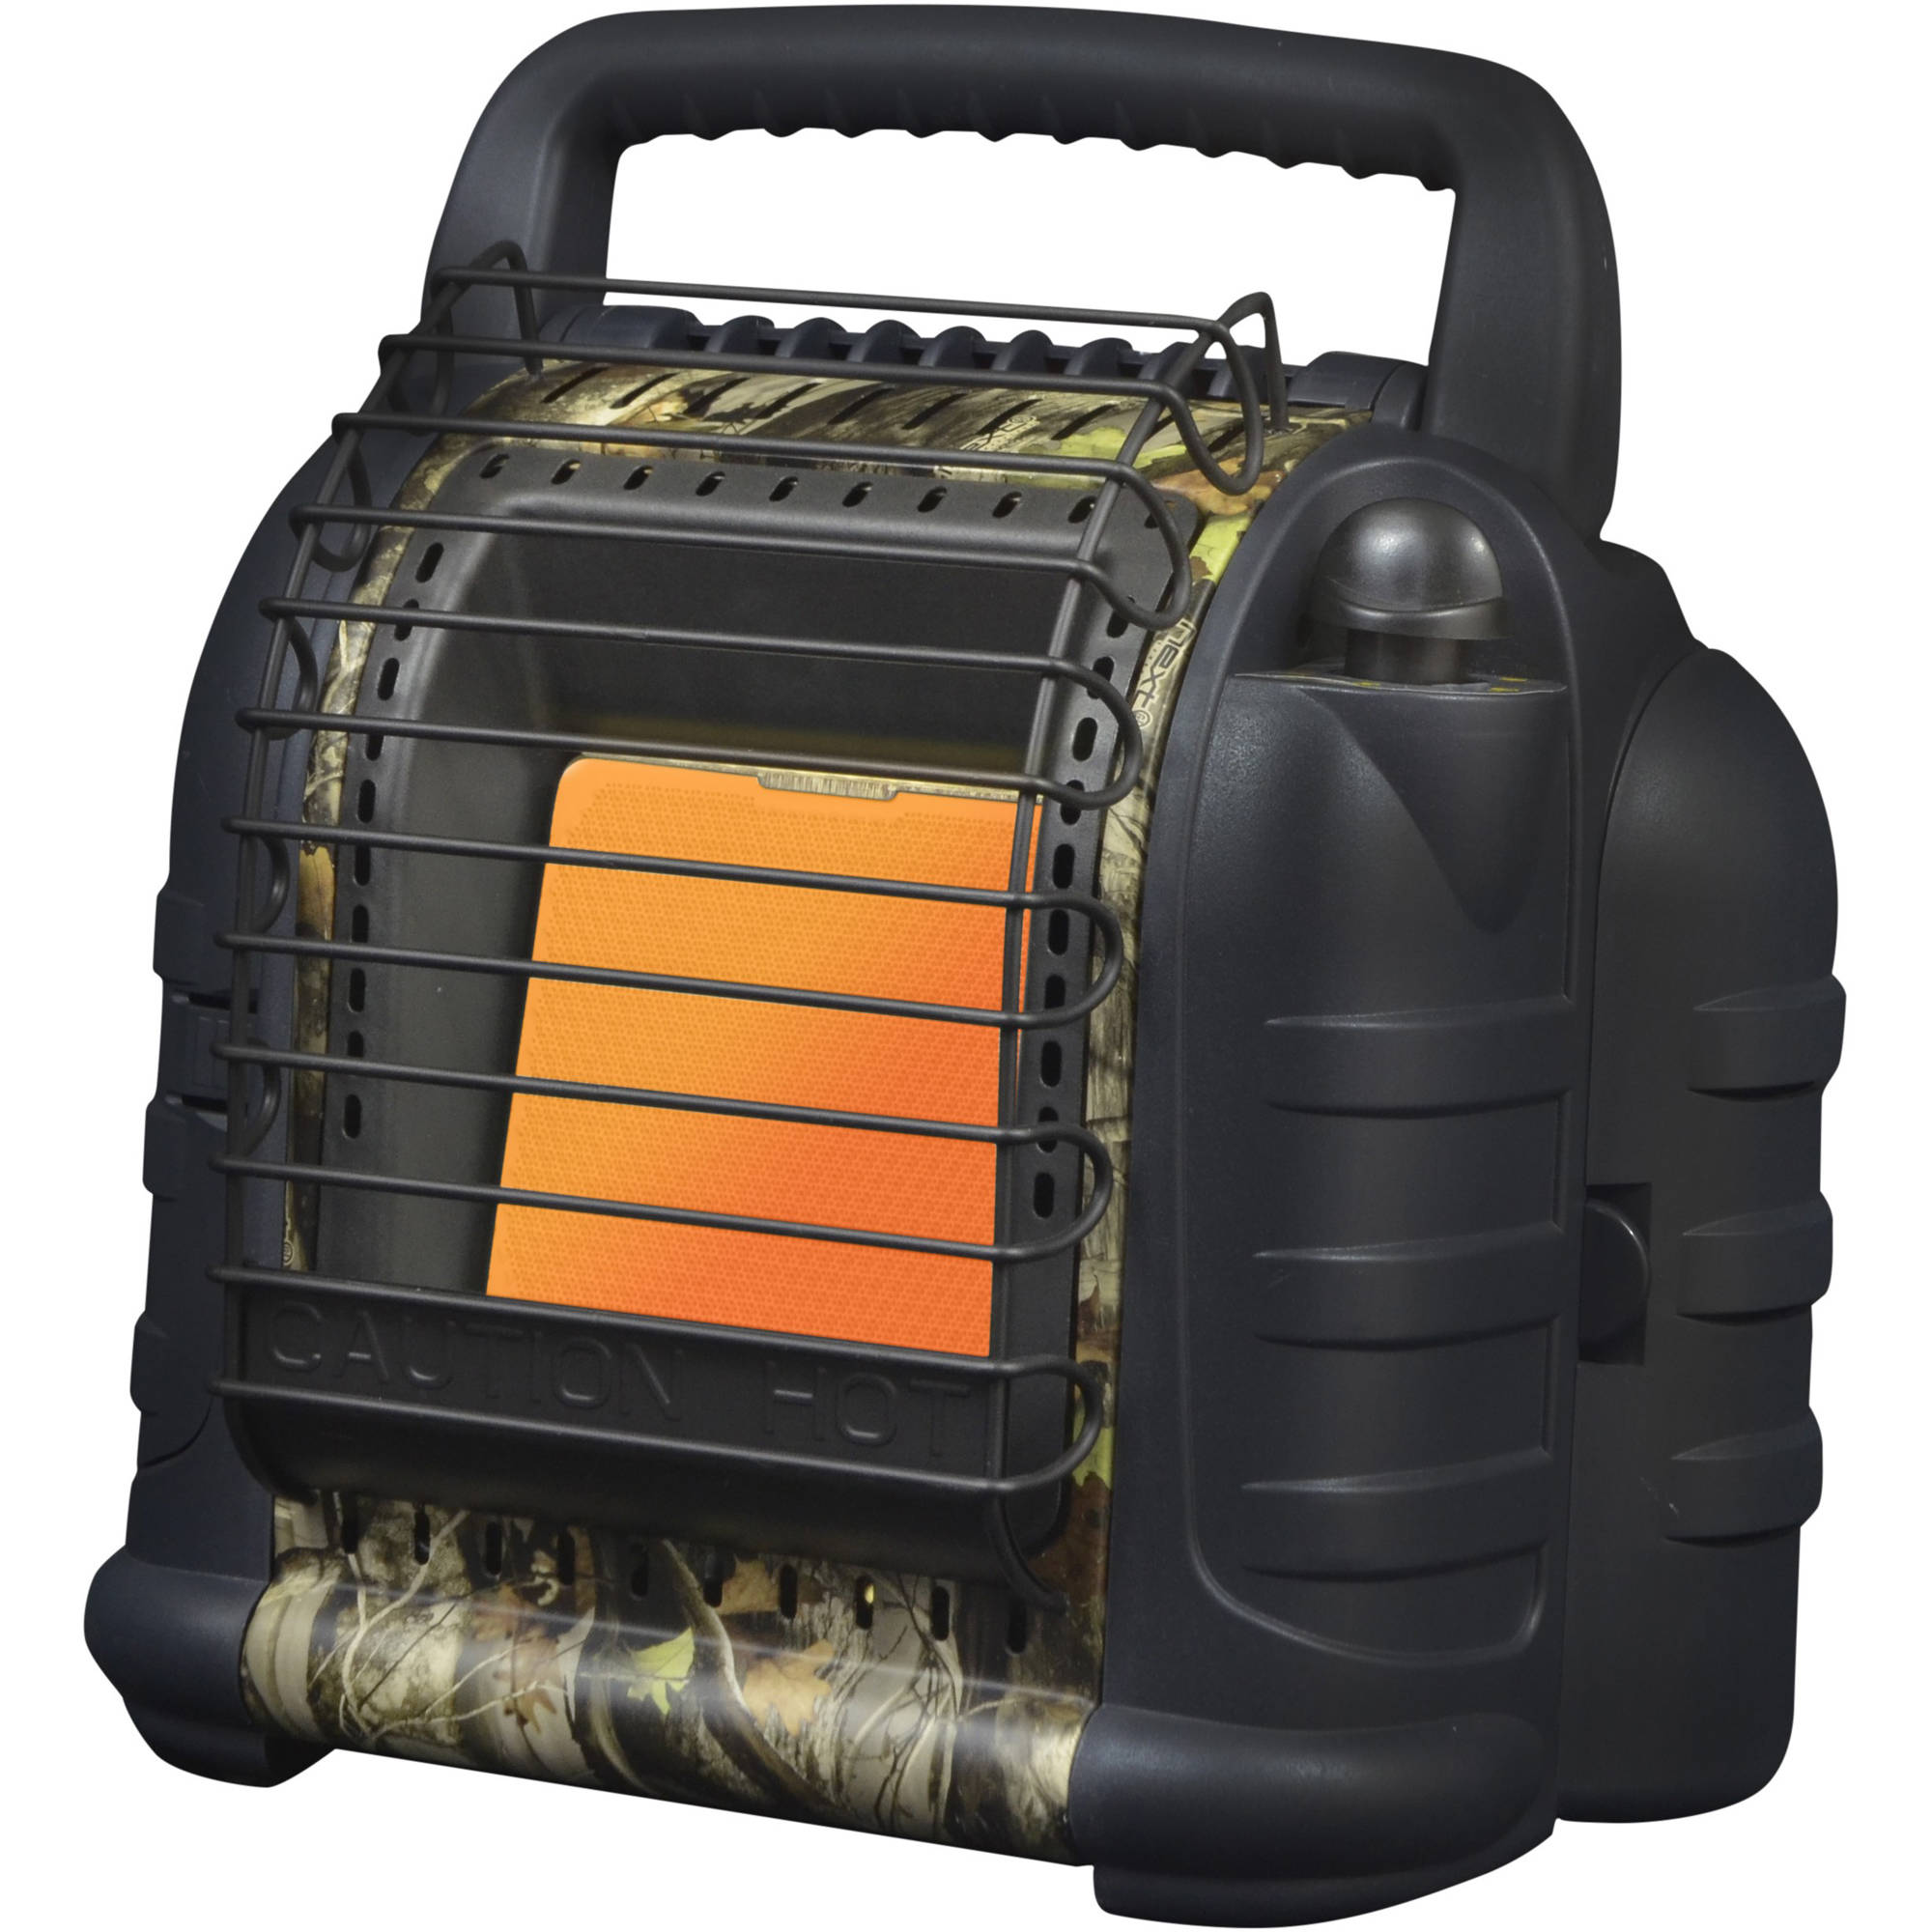 Mr Heater Mh12hb Hunting Buddy Portable Propane Heater Mh12hb